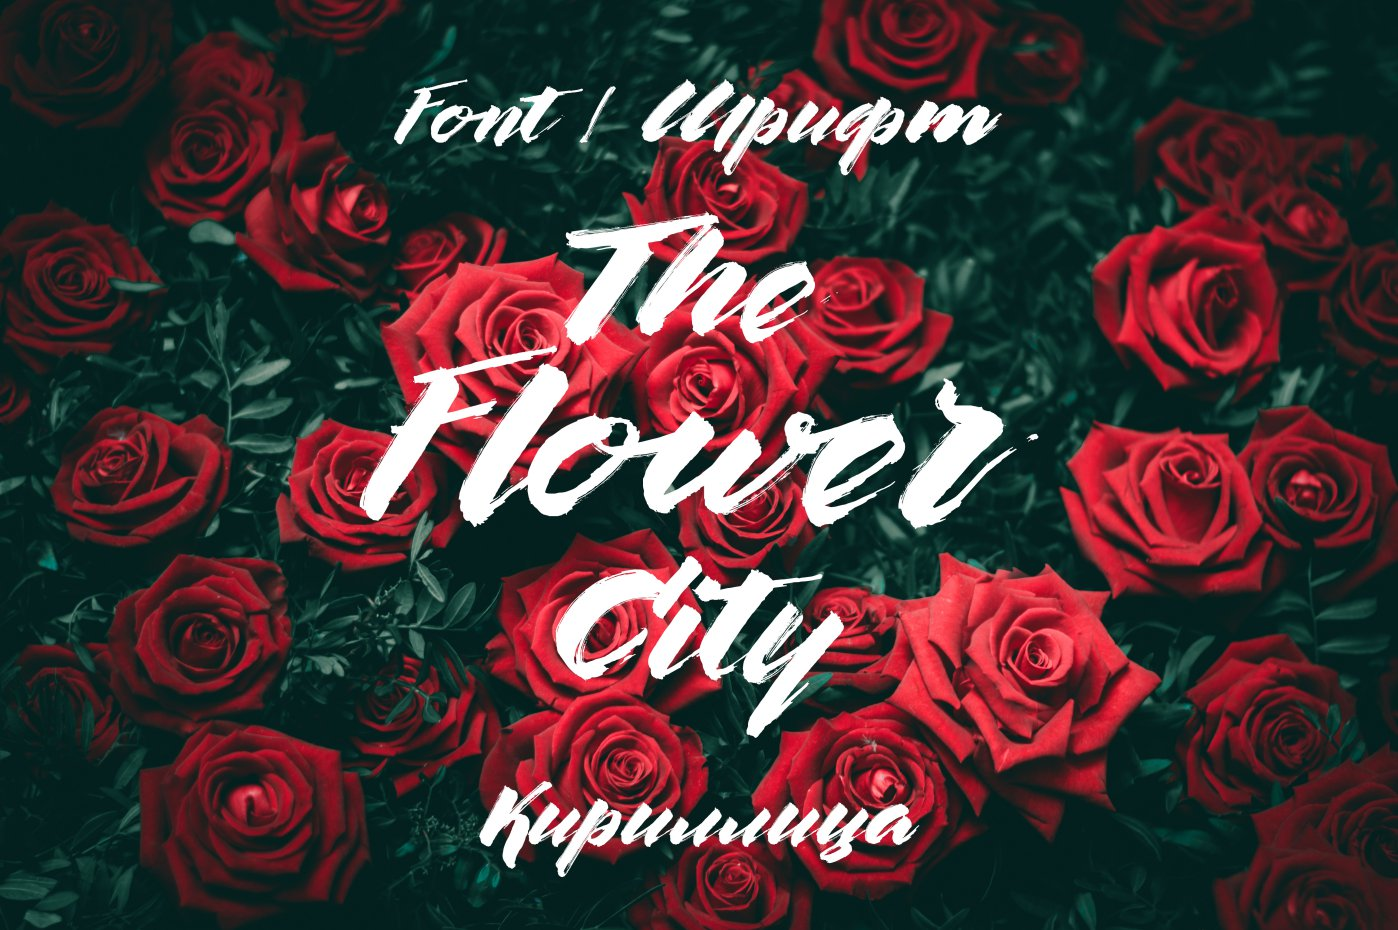 Шрифт The Flower City Cyrillic